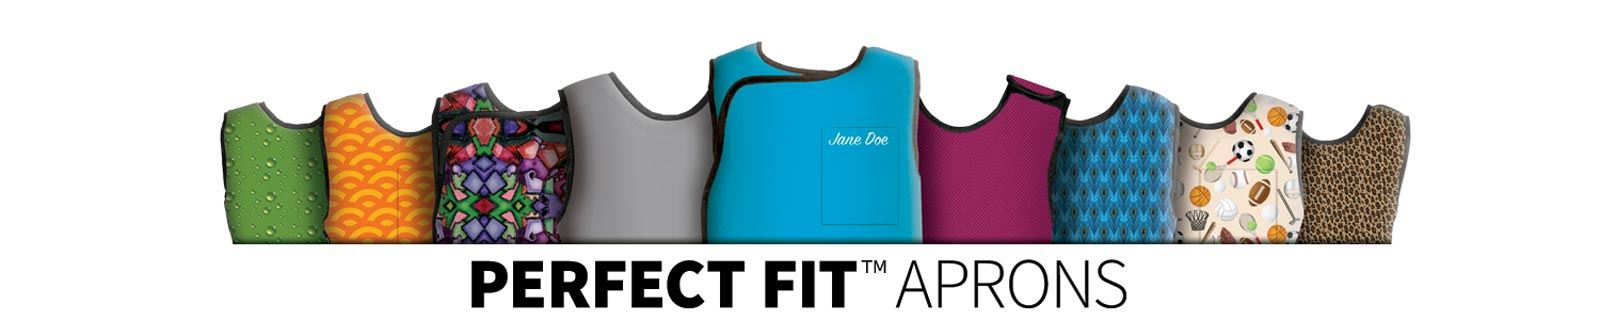 Order Perfect Fit Aprons Online